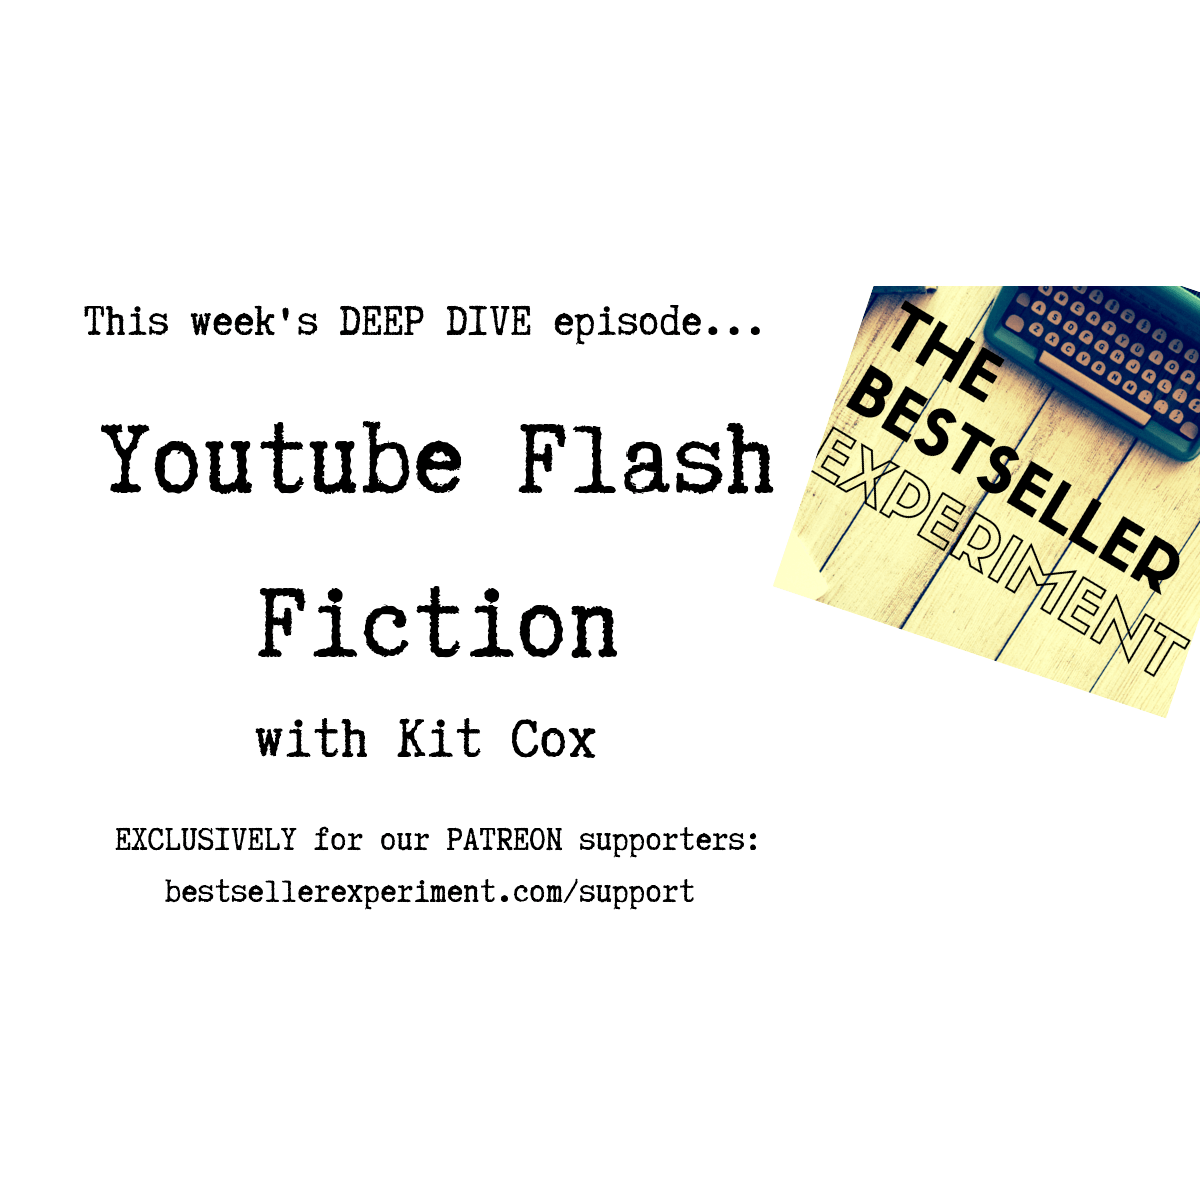 EP221: Youtube Flash Fiction with Kit Cox - The Bestseller